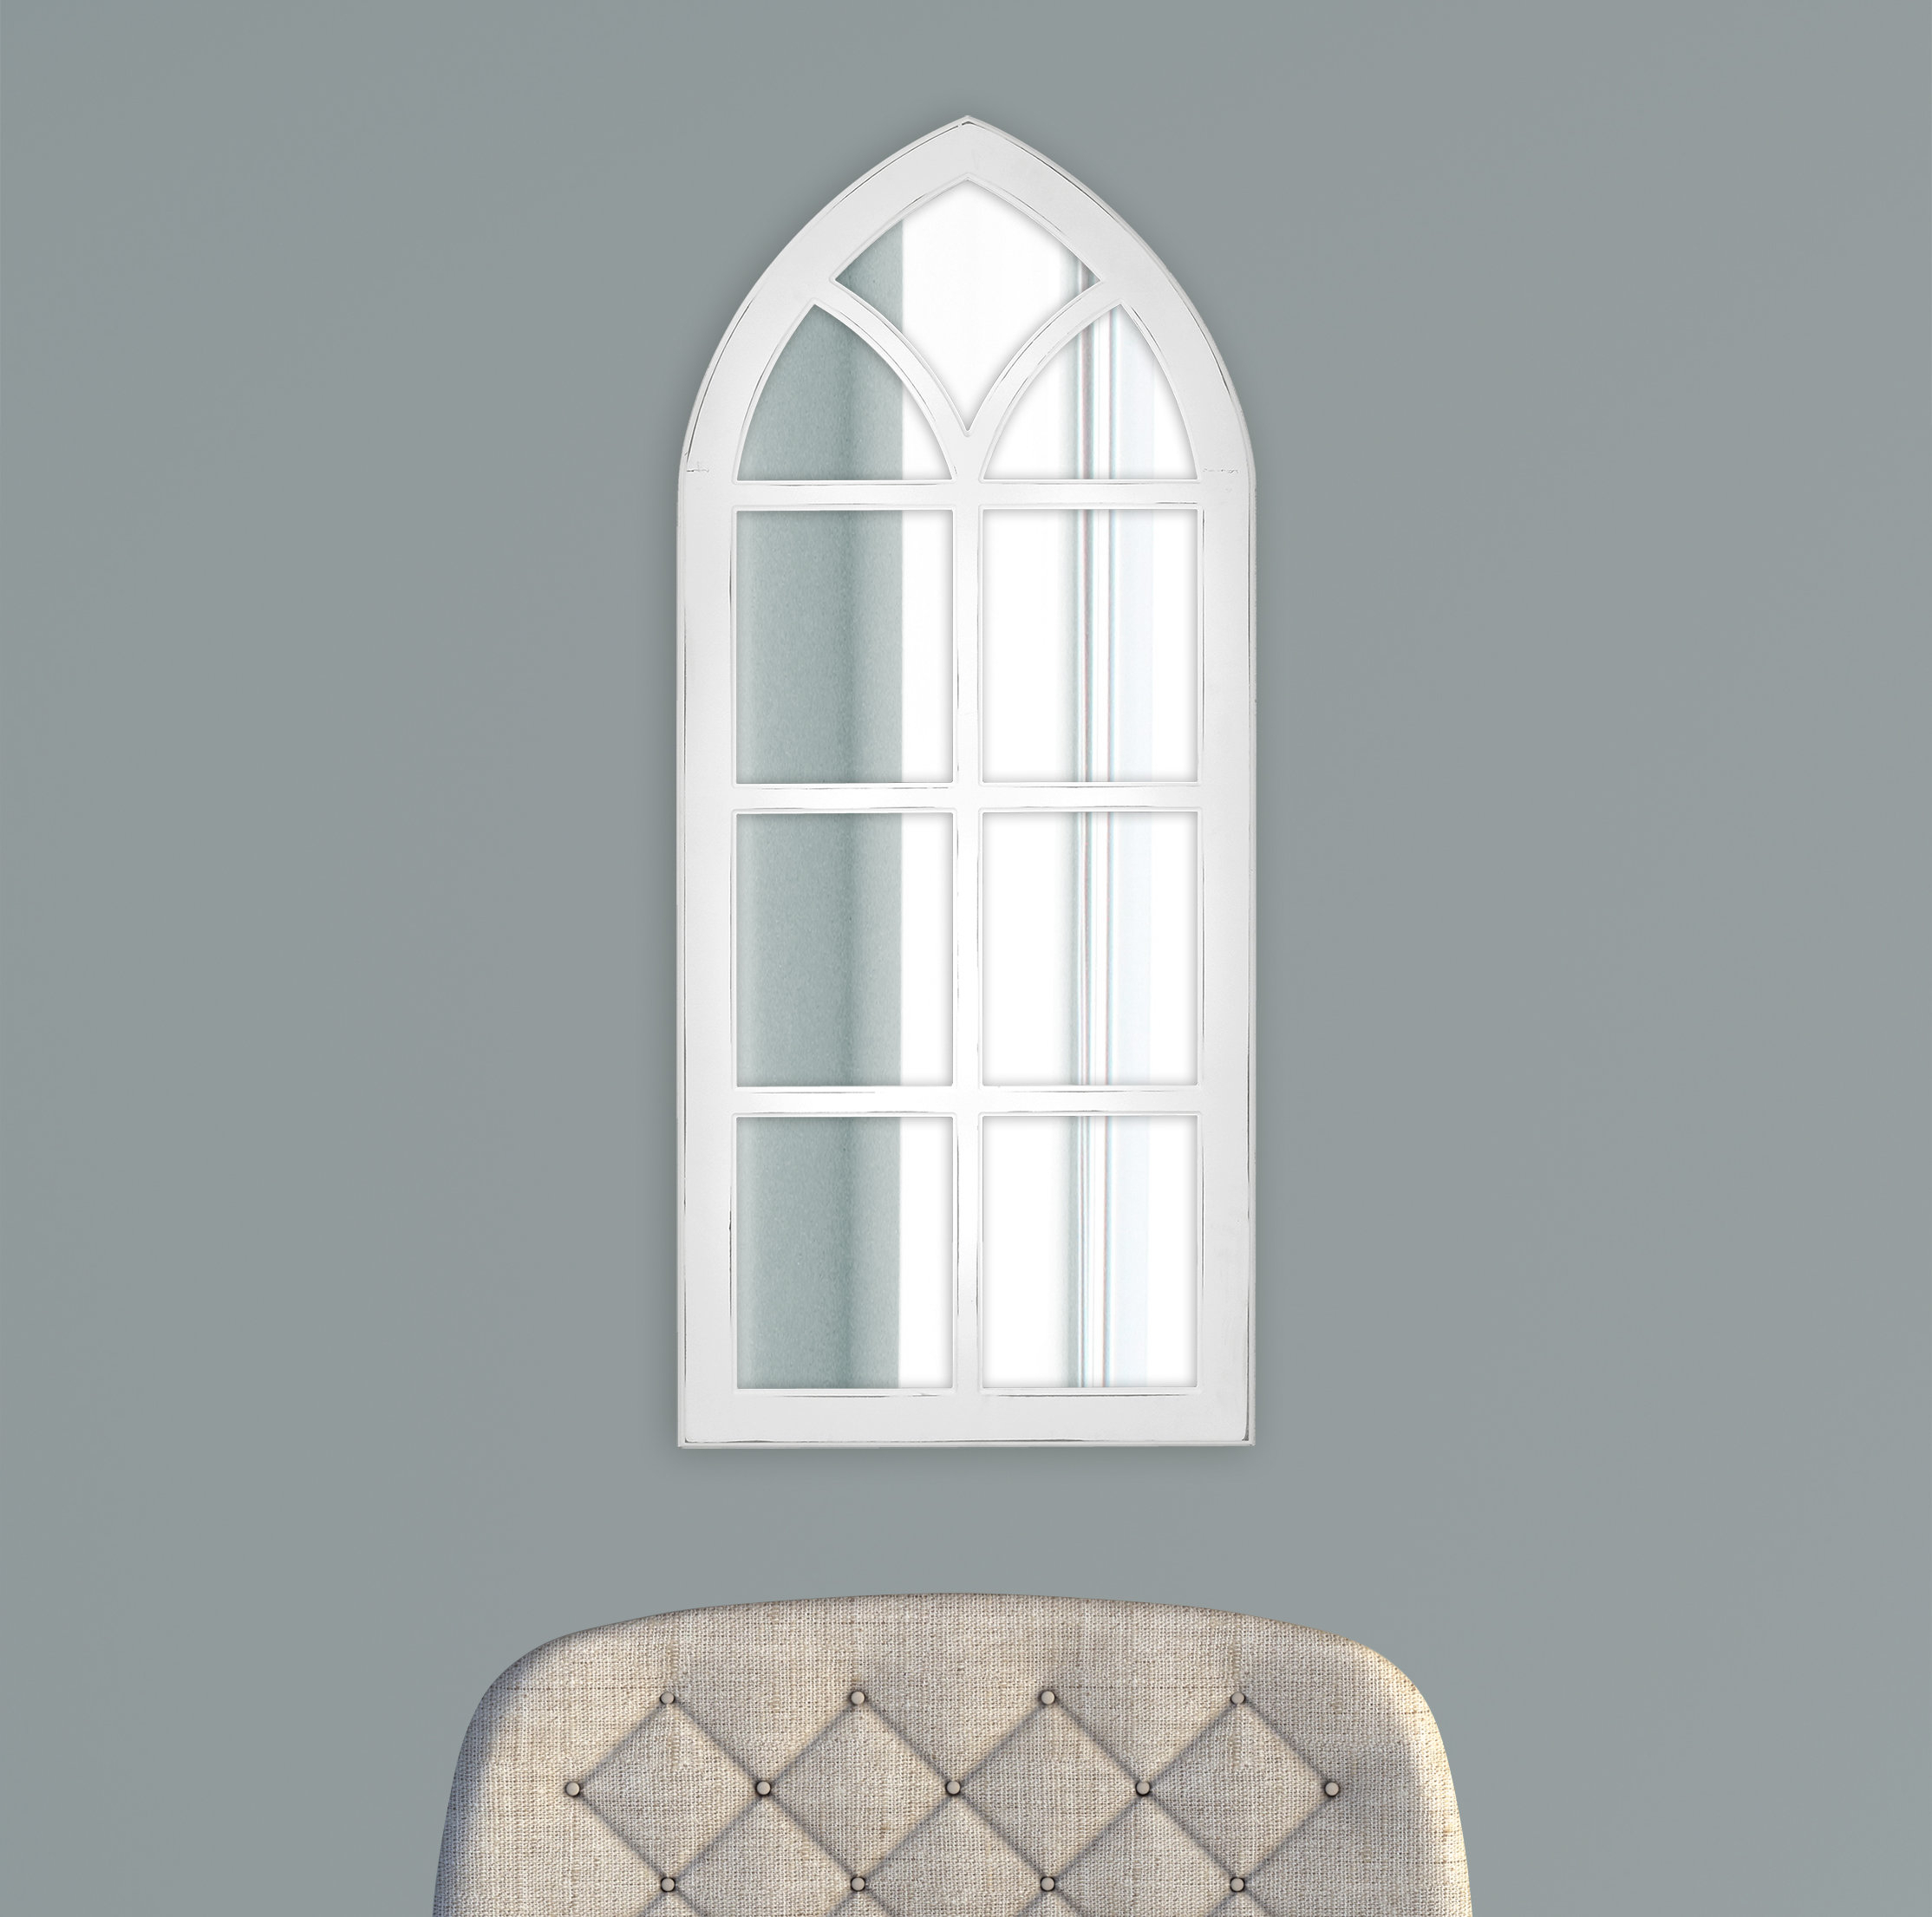 Fiscus Windowpane Wall Accent Mirror With 2 Piece Kissena Window Pane Accent Mirror Sets (View 16 of 20)